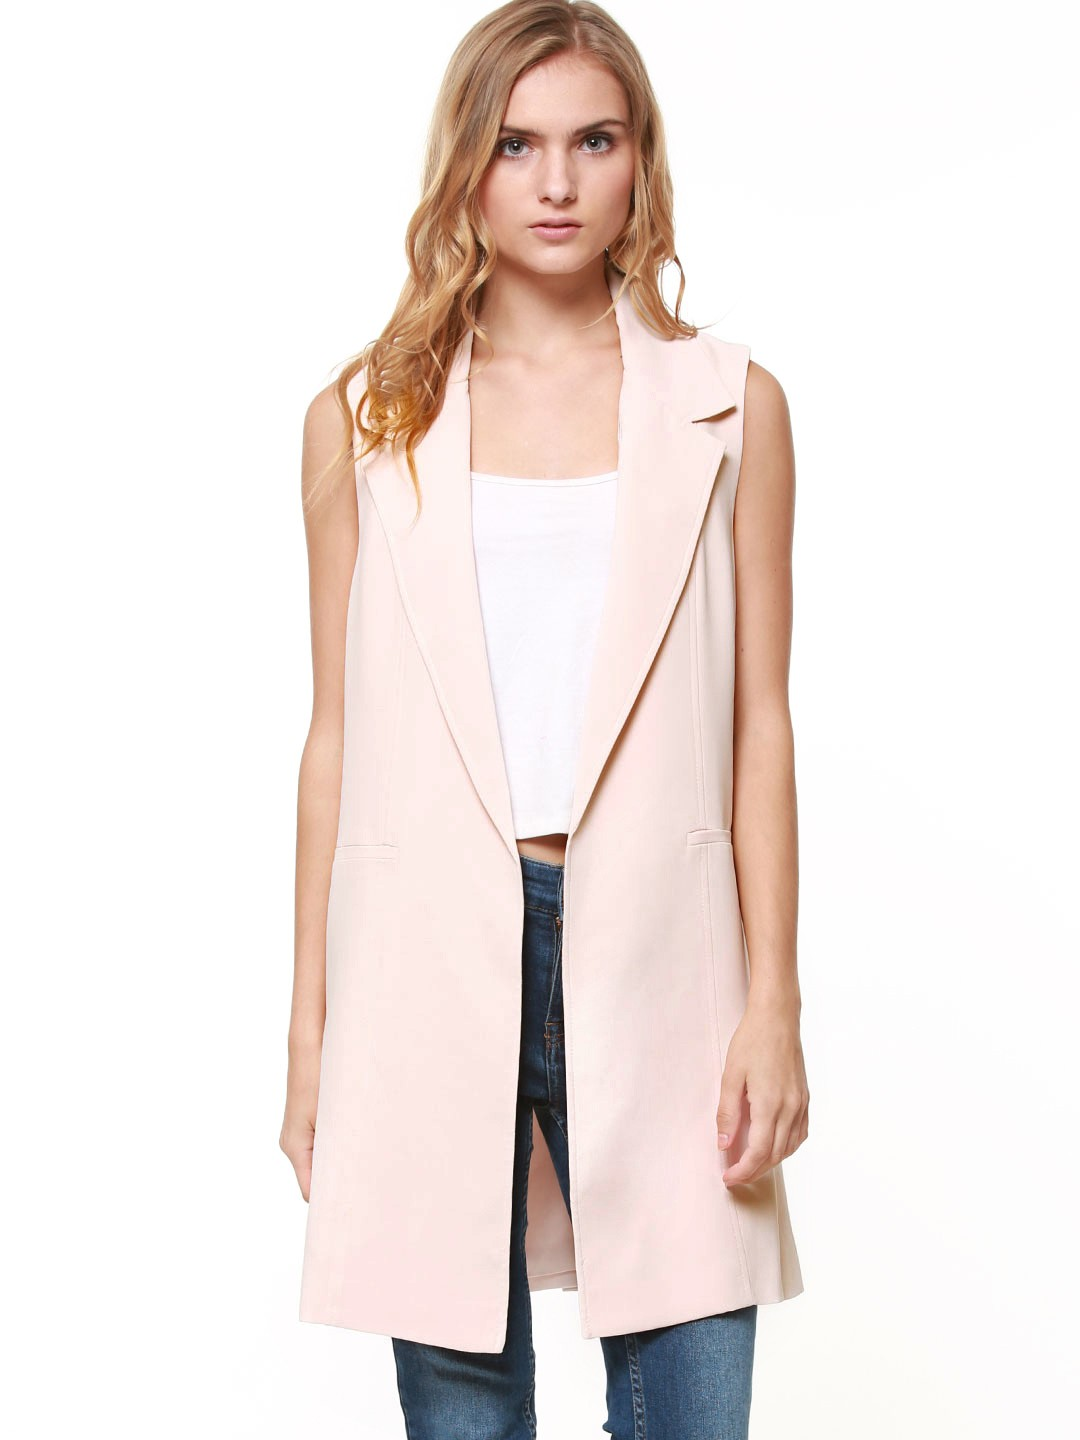 wondershopping Women's jackets Autumn Winter Fashion Stylish Ladies Sleeveless Hoodie Women Jacket. Sold by Wondershopping. $ $ Distortion Mens Stripe Sleeveless Hoodie. Sold by Bealls Florida. $ $ Distortion Mens Ombre Sleeveless Hoodie. .